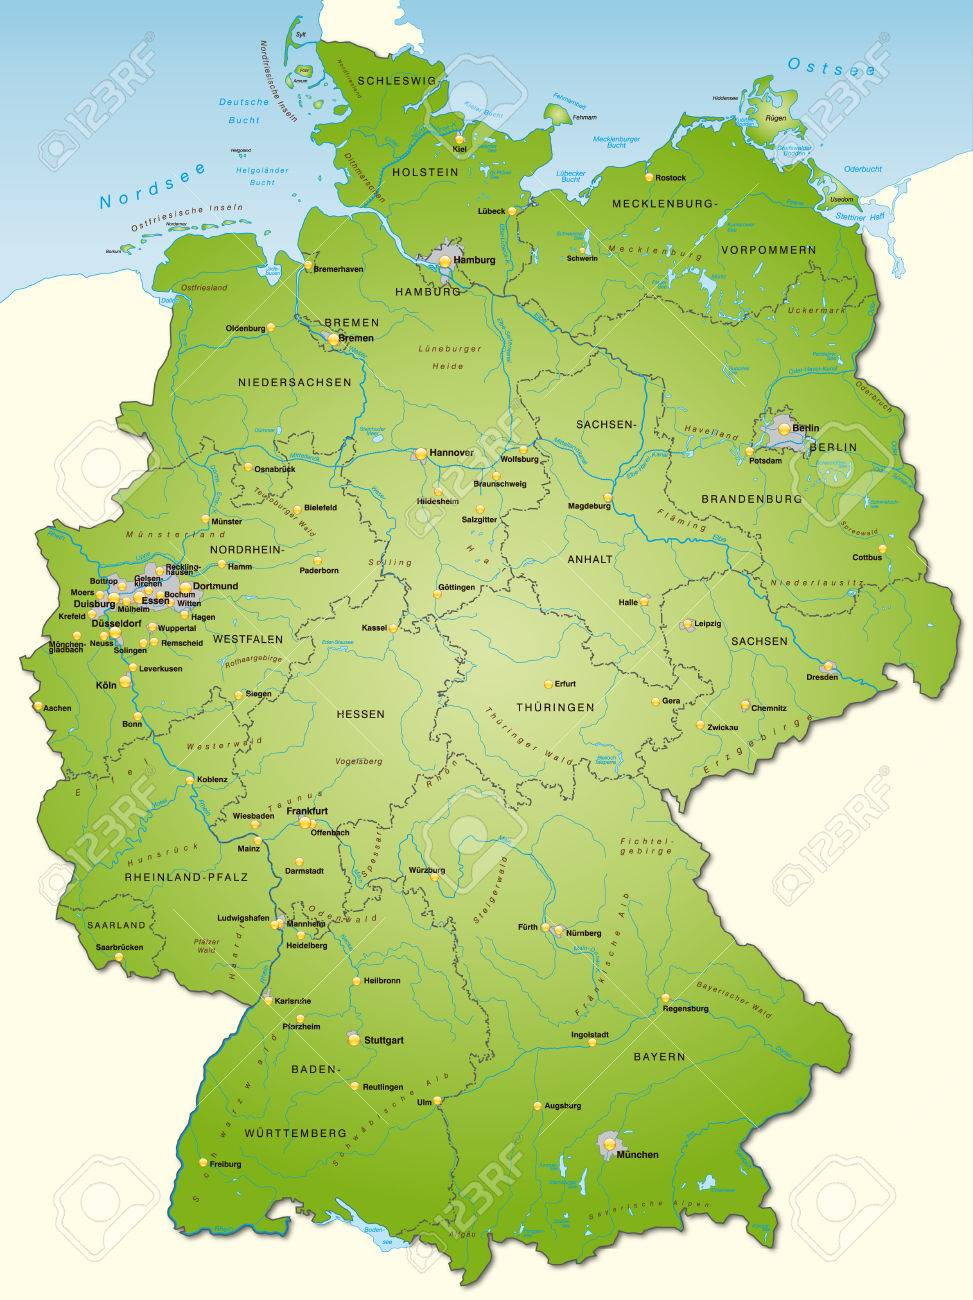 Map Of Germany As An Overview Map In Green Royalty Free Cliparts